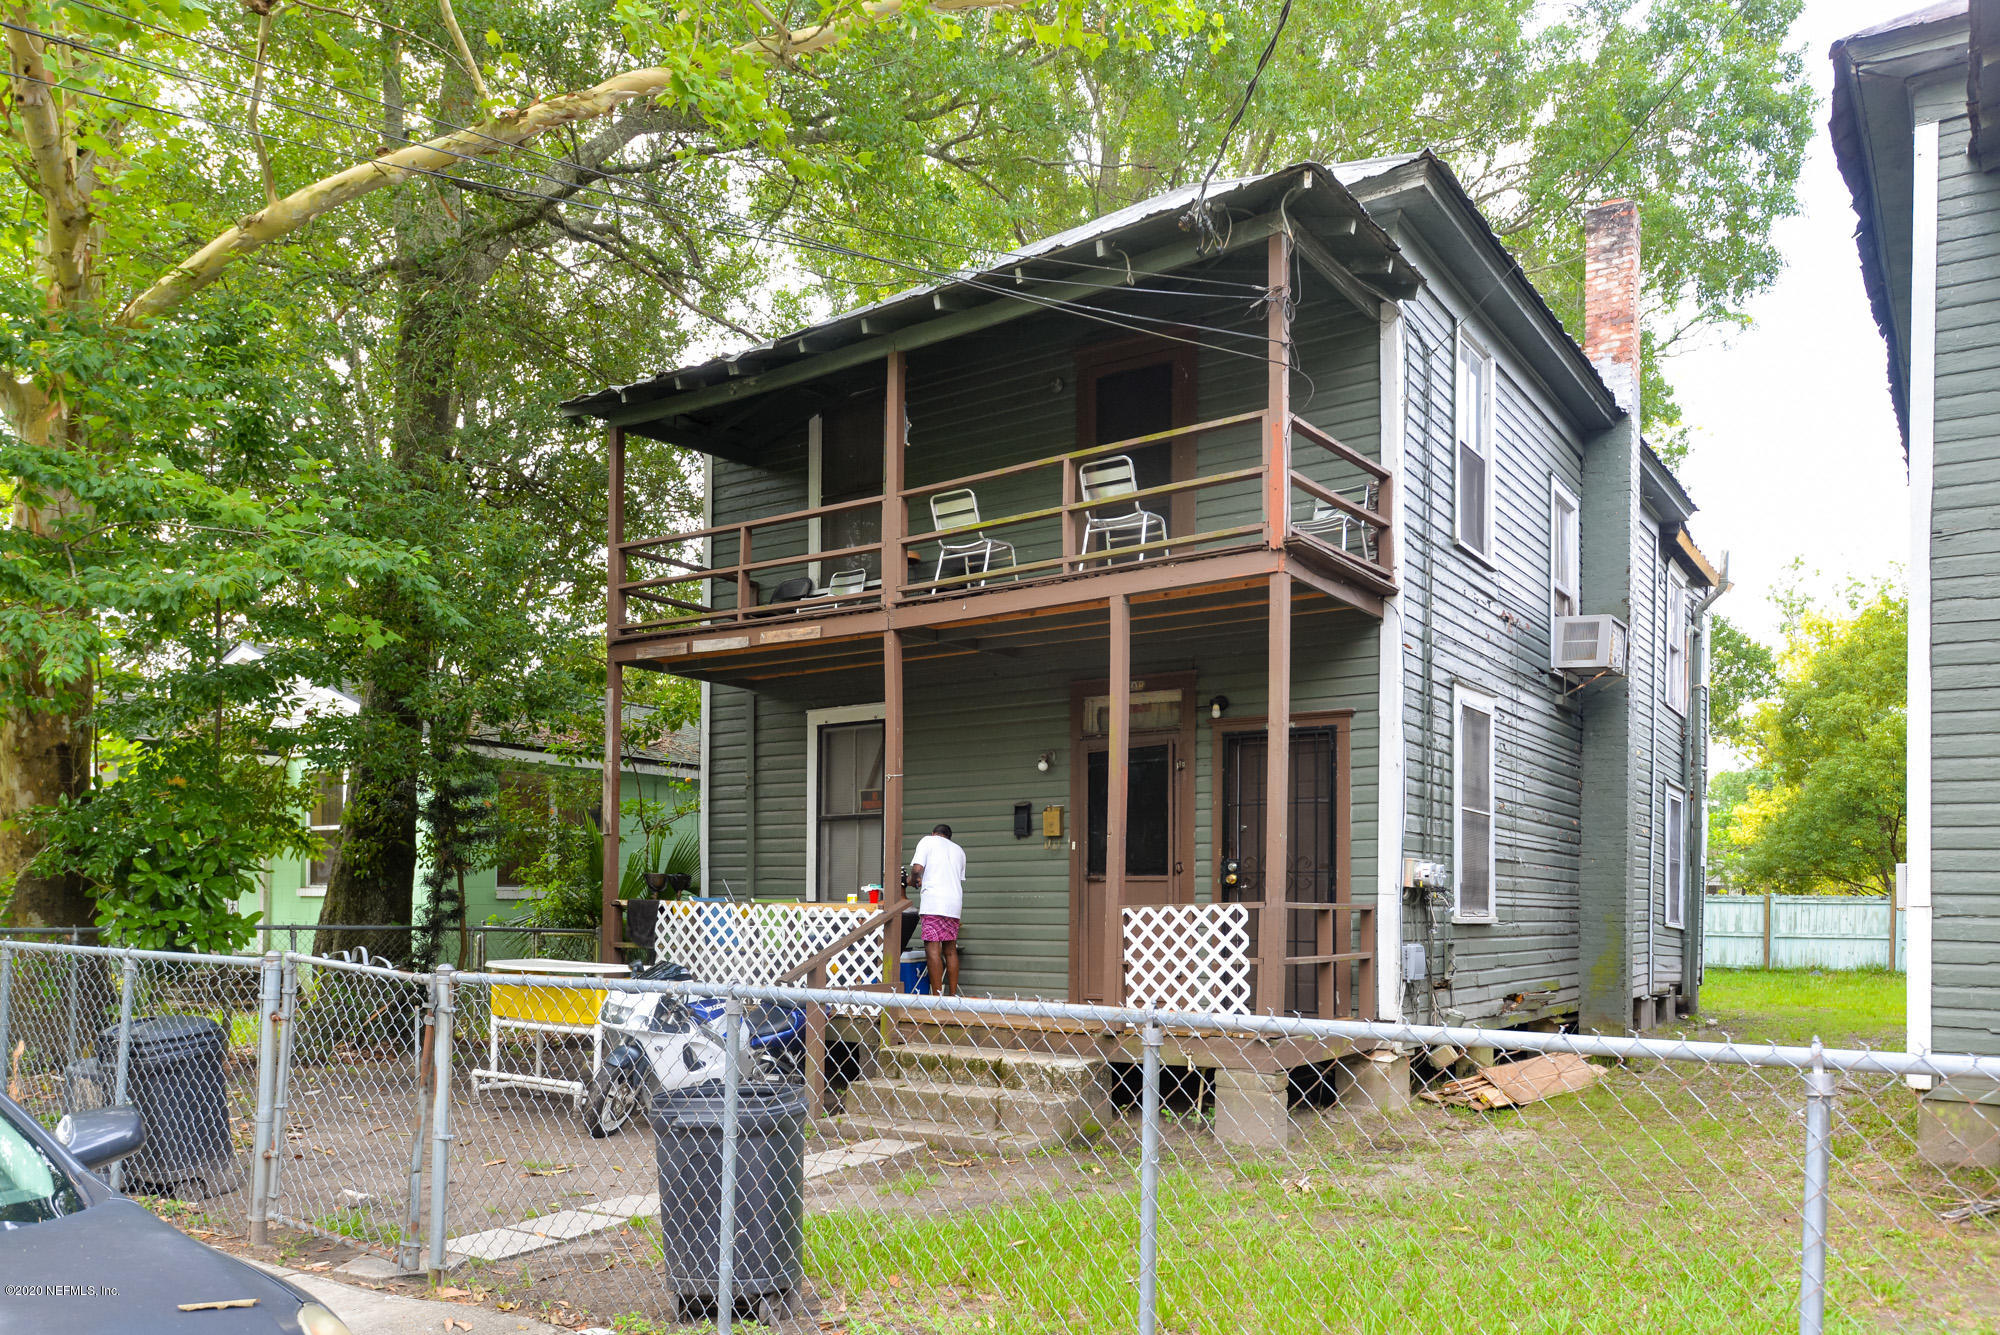 1708 11TH, JACKSONVILLE, FLORIDA 32209, 4 Bedrooms Bedrooms, ,2 BathroomsBathrooms,Investment / MultiFamily,For sale,11TH,1057521